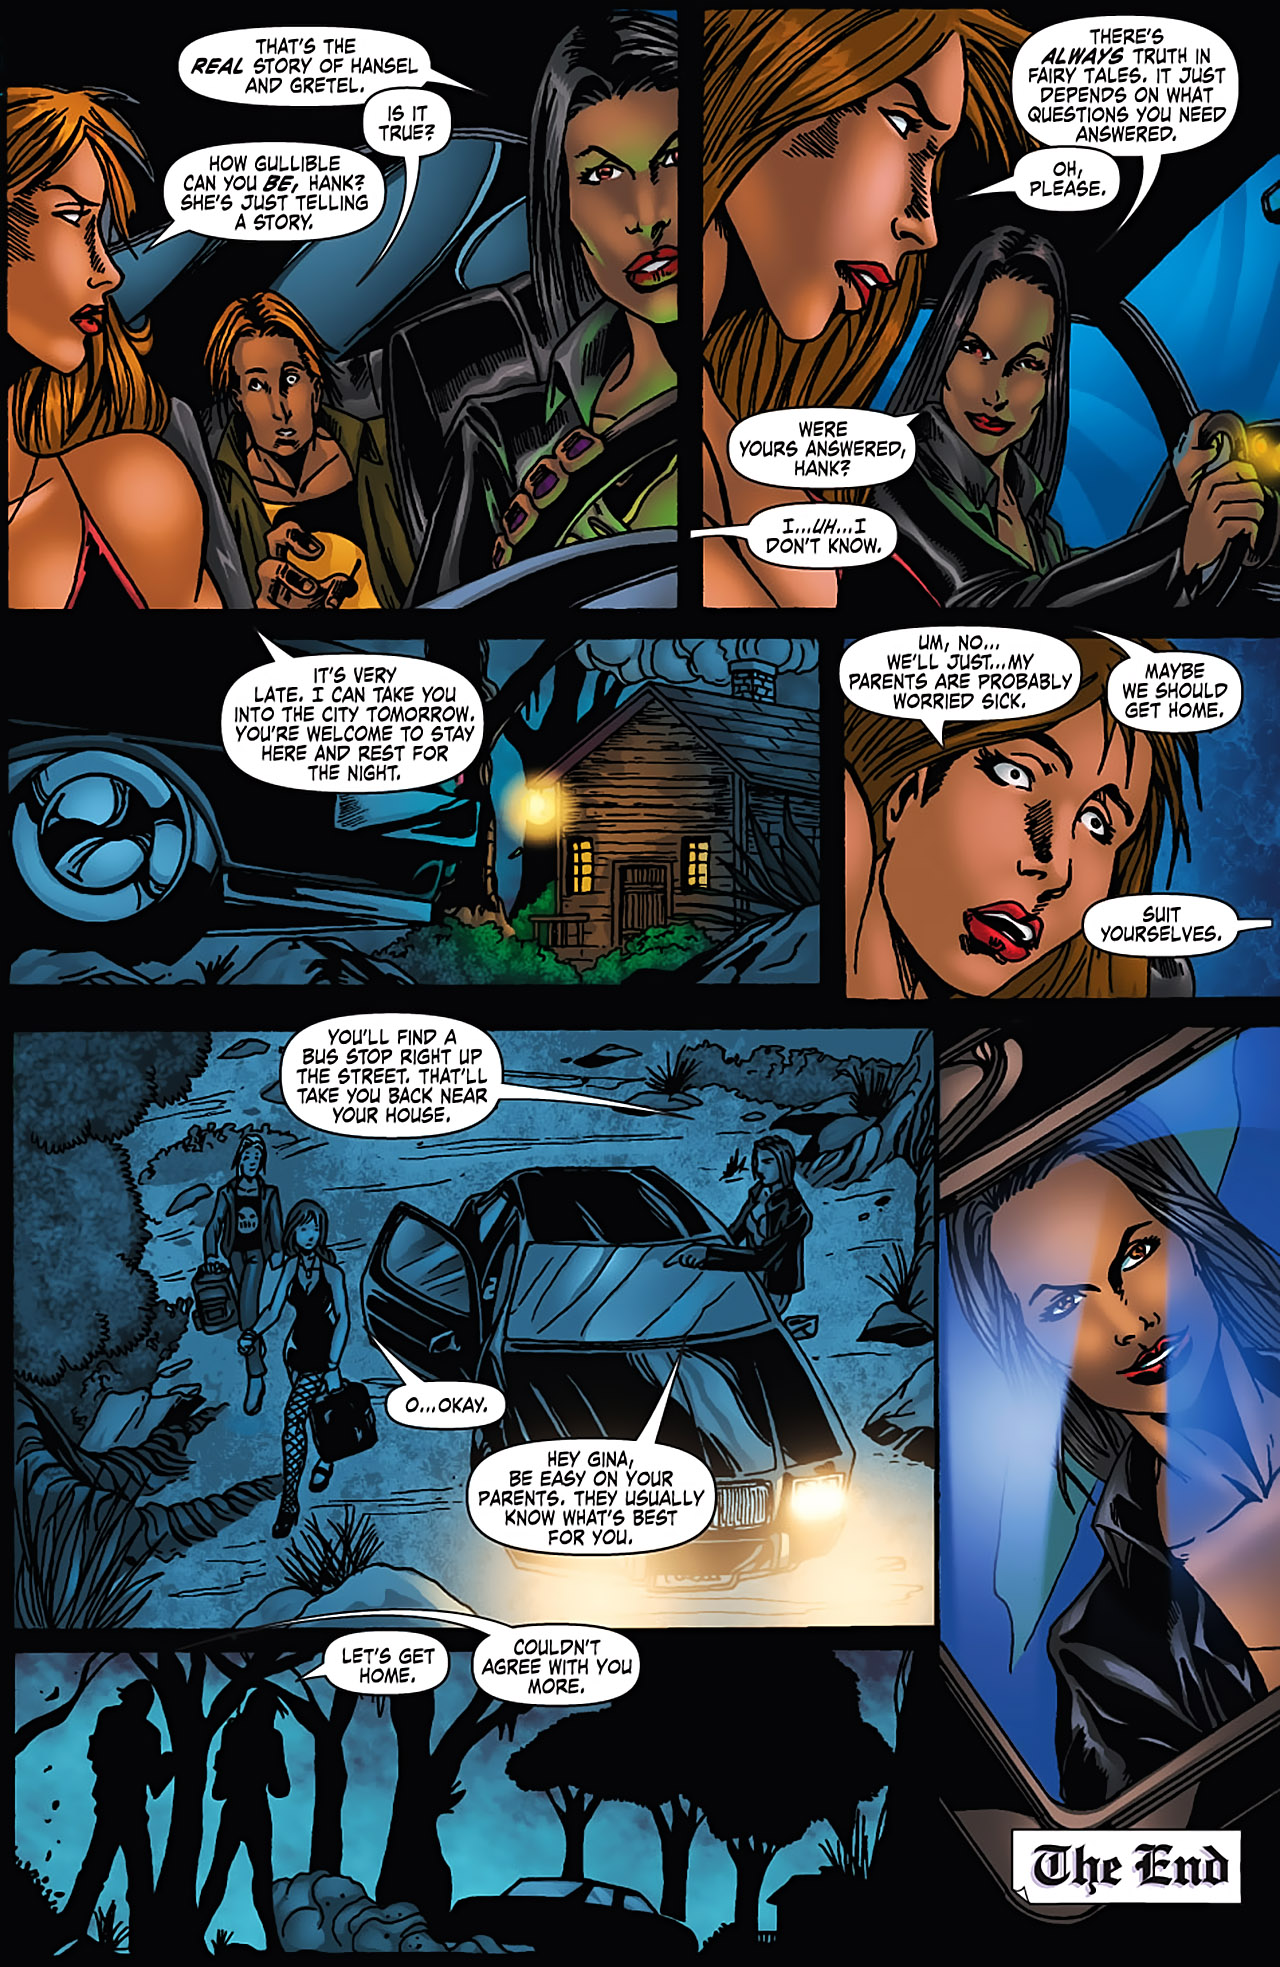 Grimm Fairy Tales (2005) Issue #3 #6 - English 25